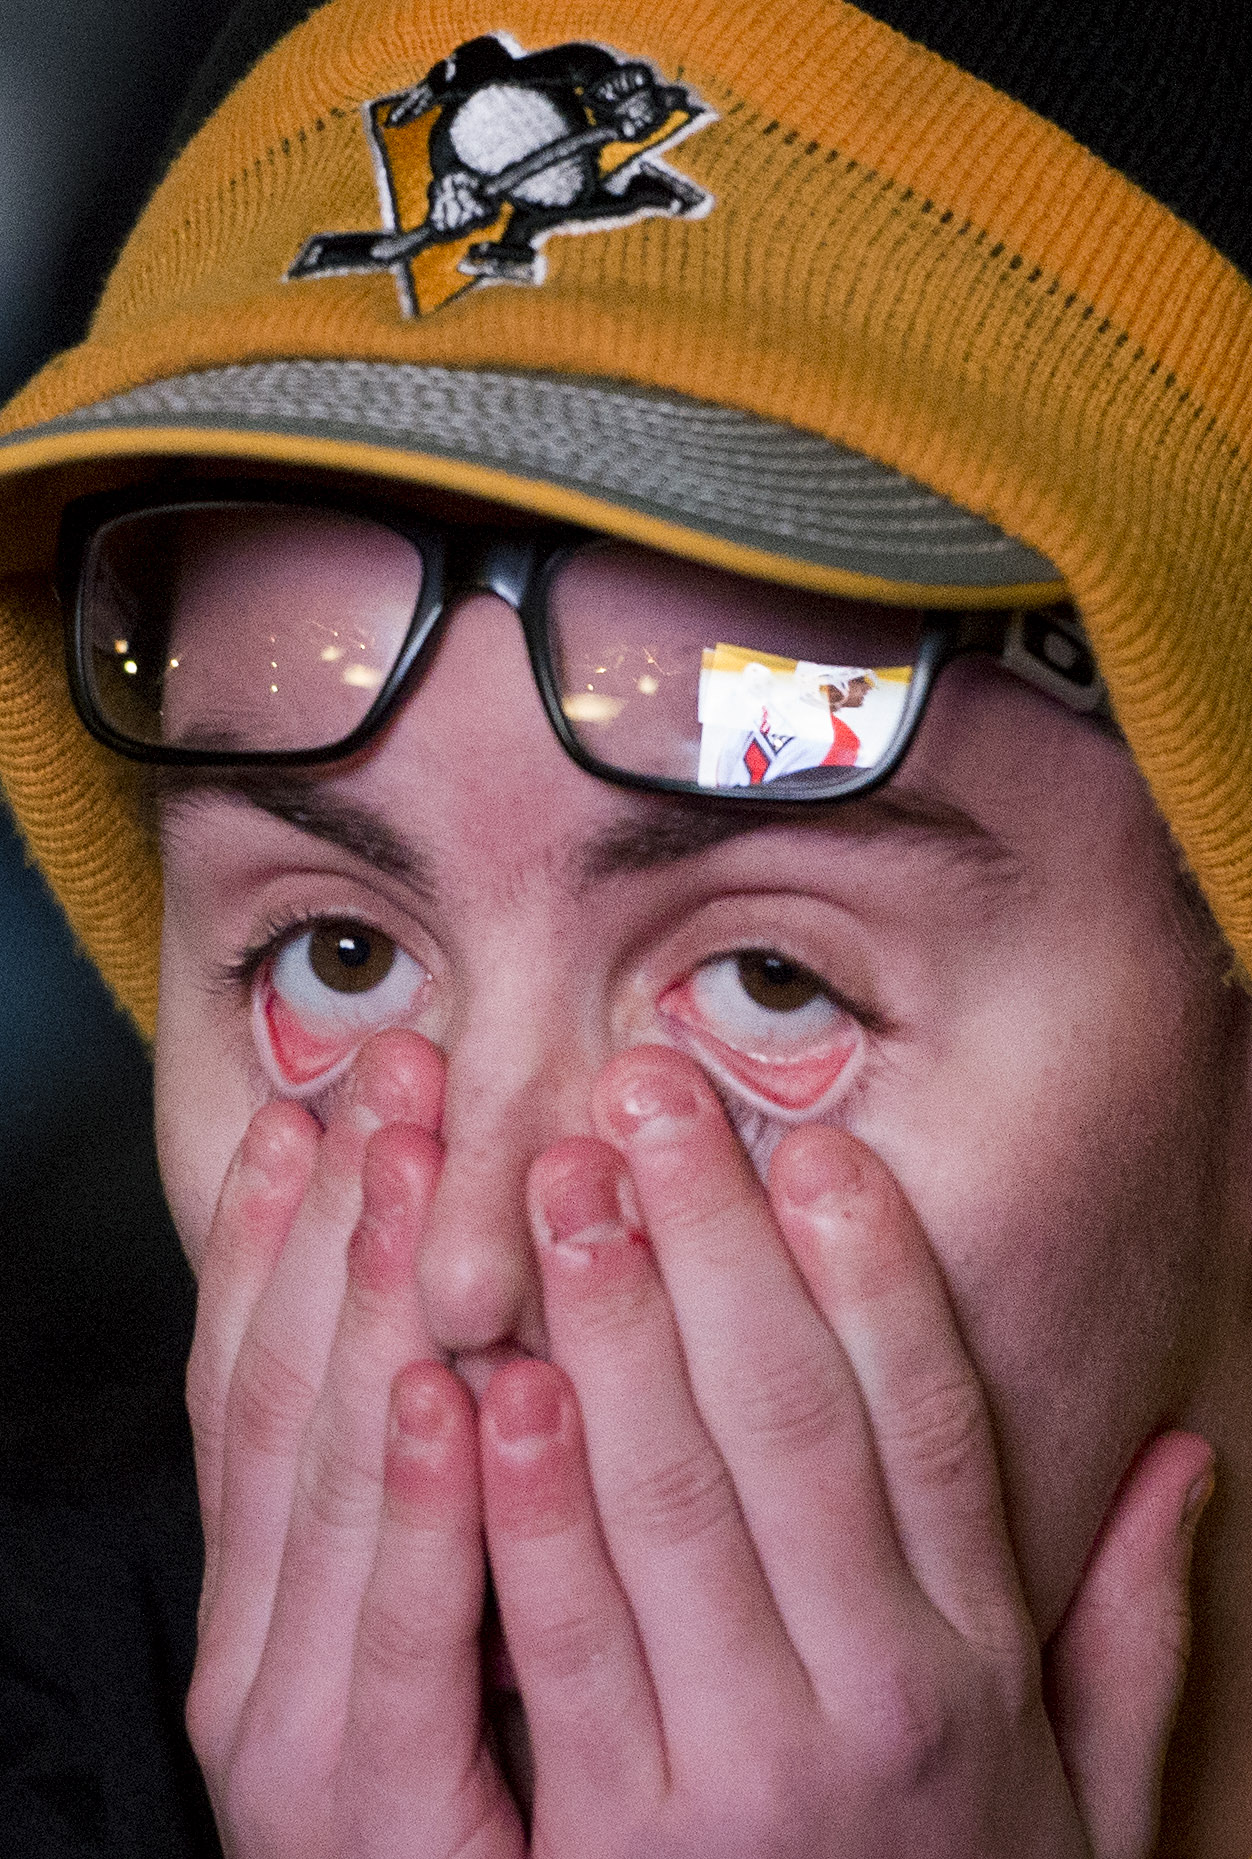 Joey Bova of Bethel Park react as Flyer Valtteri Filppula ties the game while watching the big screen during game 5 of the first-round playoff series against the Philadelphia Flyers on Friday, April 20, 2018, outside PPG Paints Arena. (Steph Chambers/Post-Gazette)